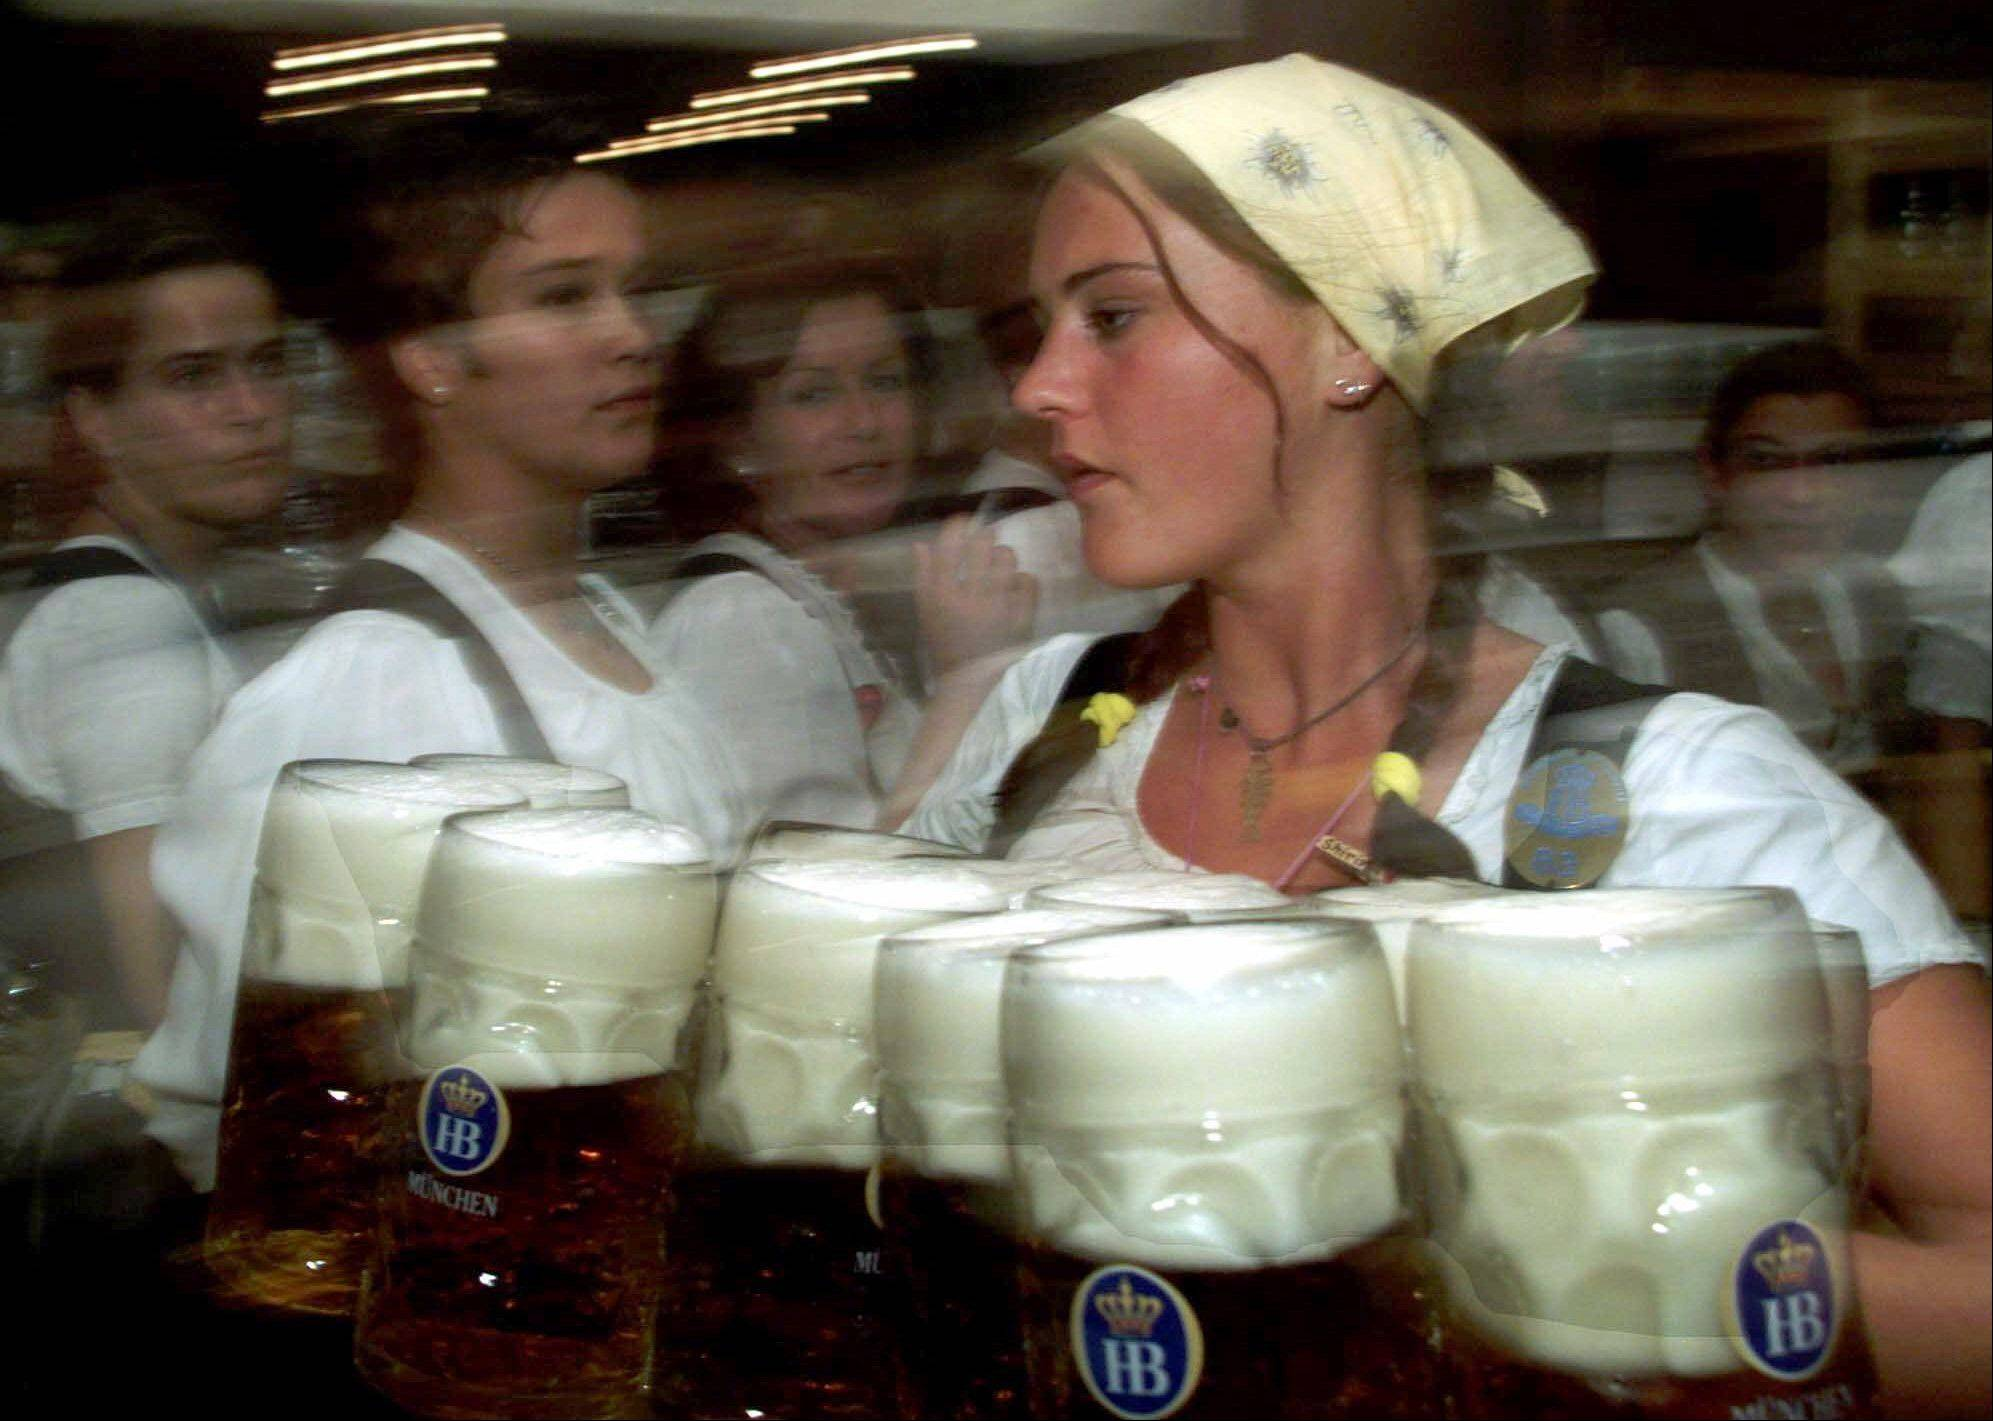 A waitress carries beer steins after the official Oktoberfest opening ceremony in Munich, Germany. Millions enjoy Oktoberfests in Europe and the United States each fall.